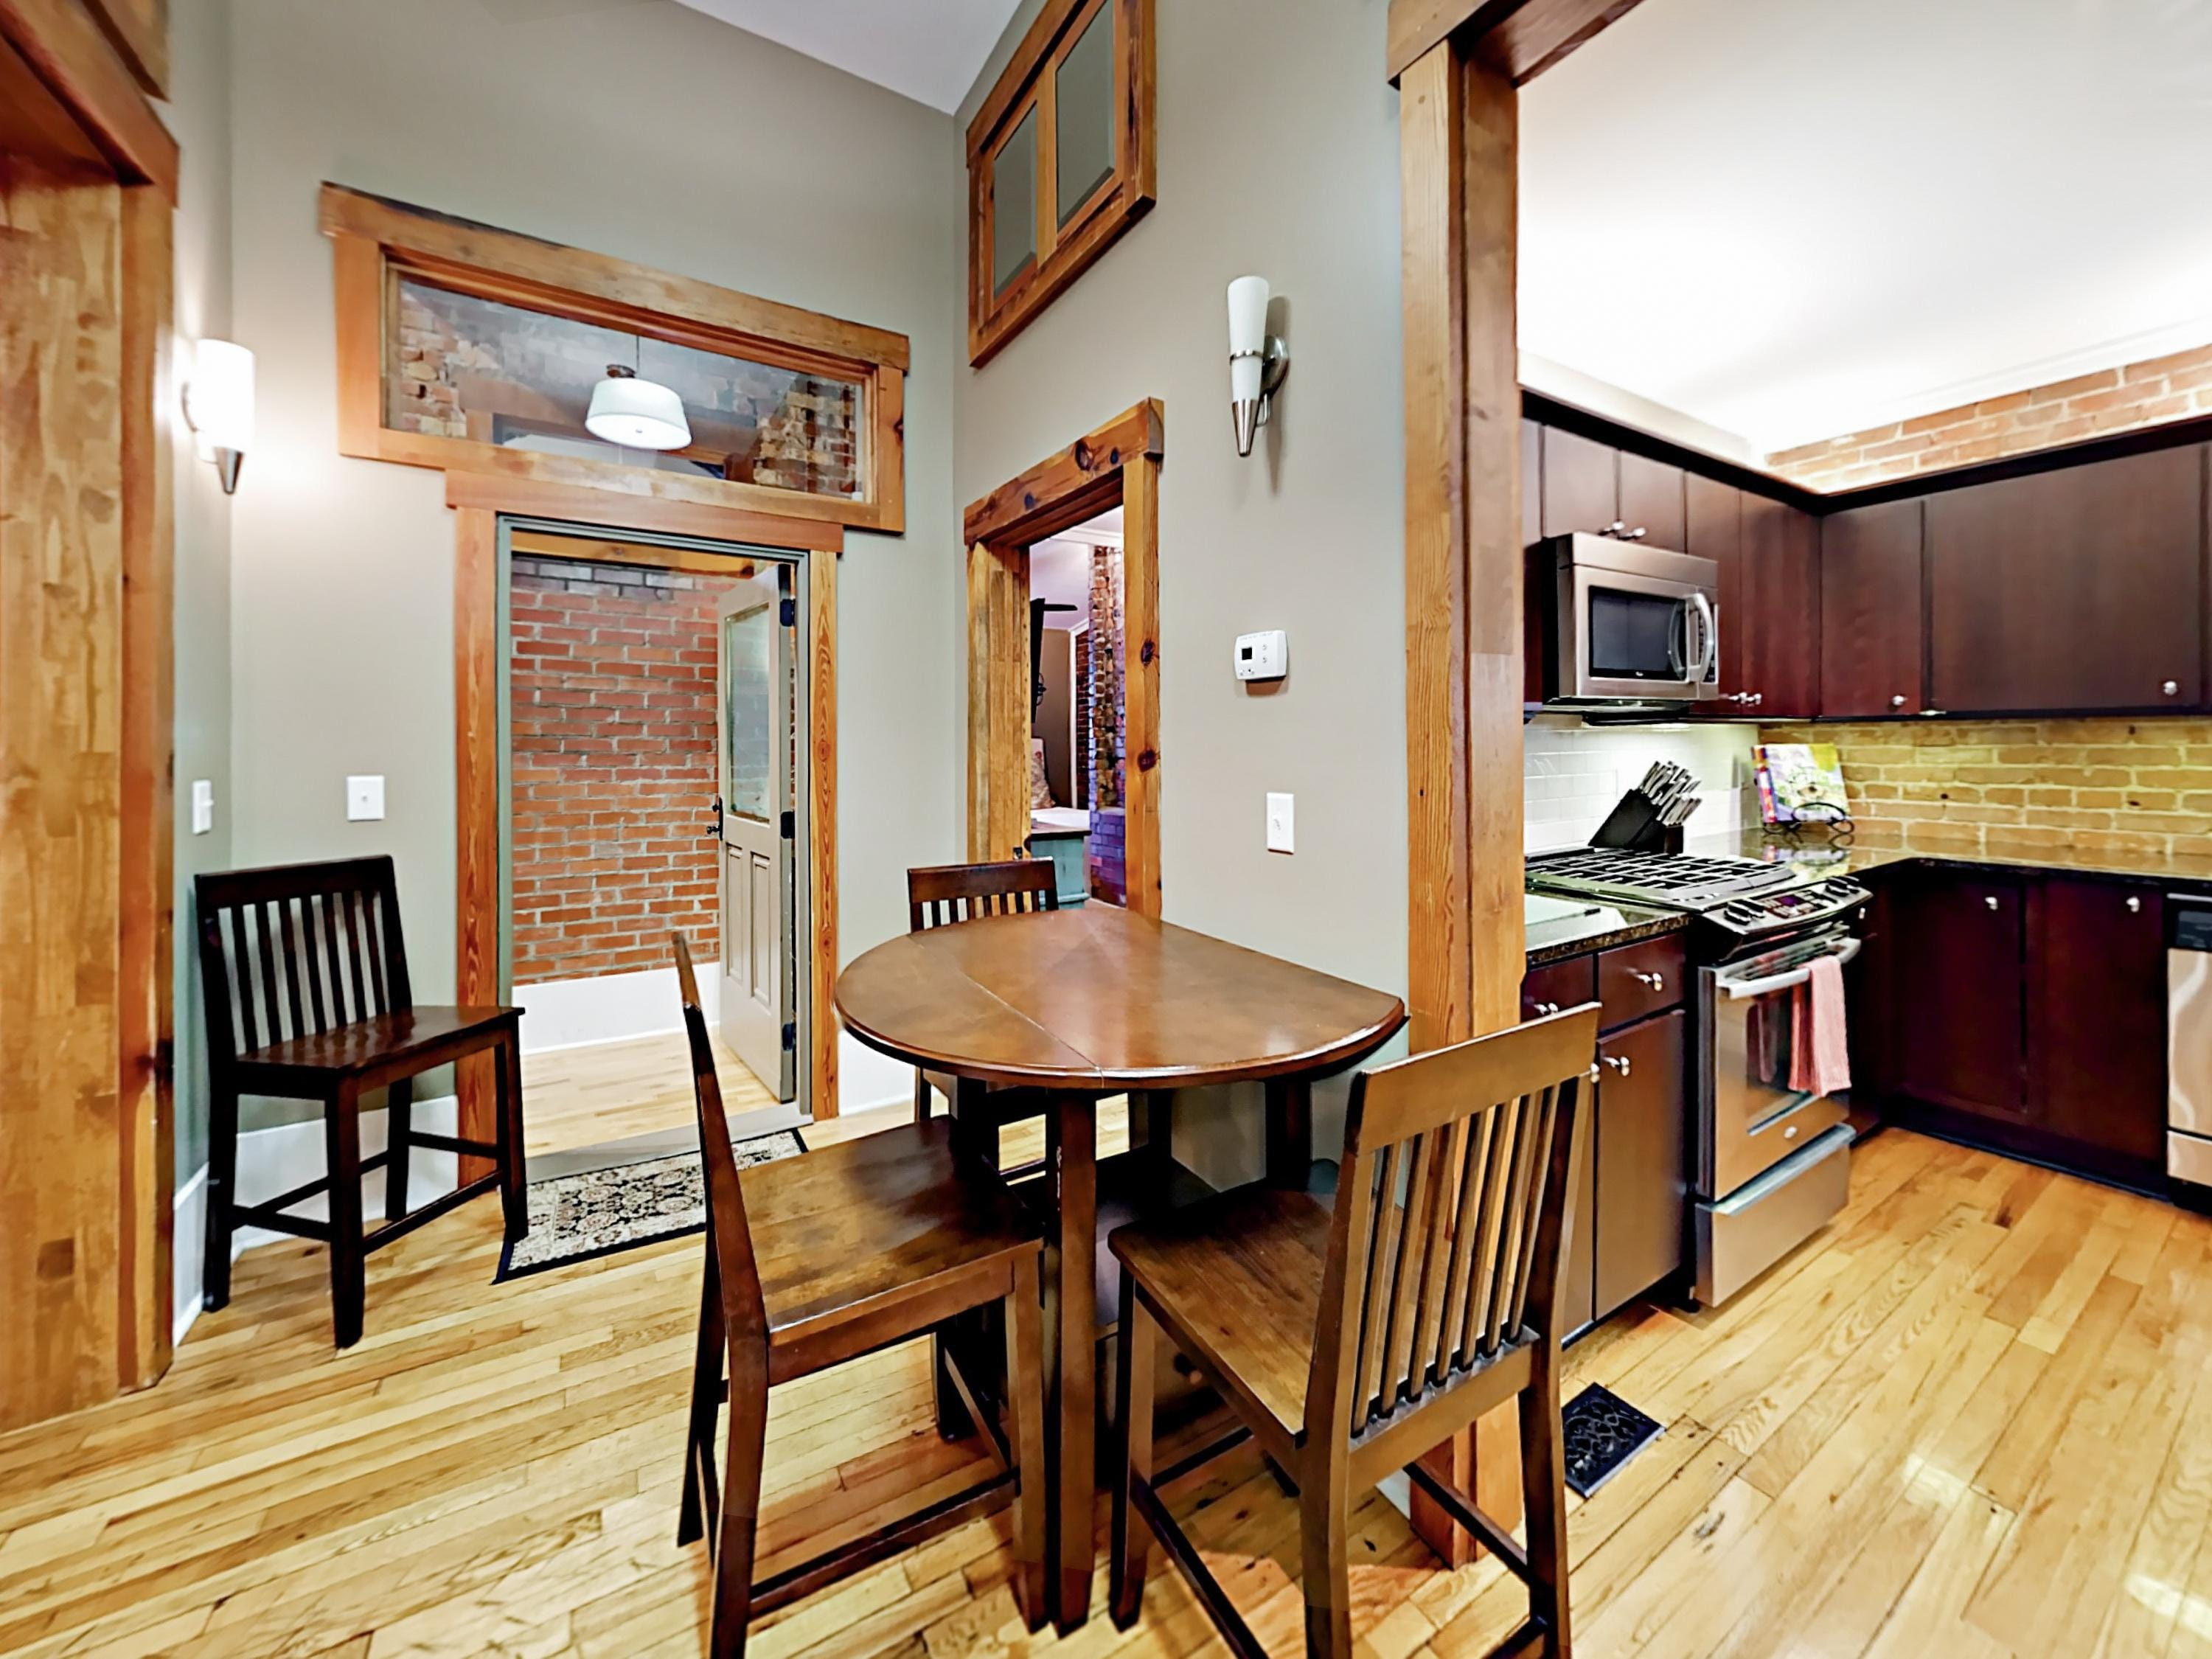 Dine together at the wooden bistro table, just off the kitchen.